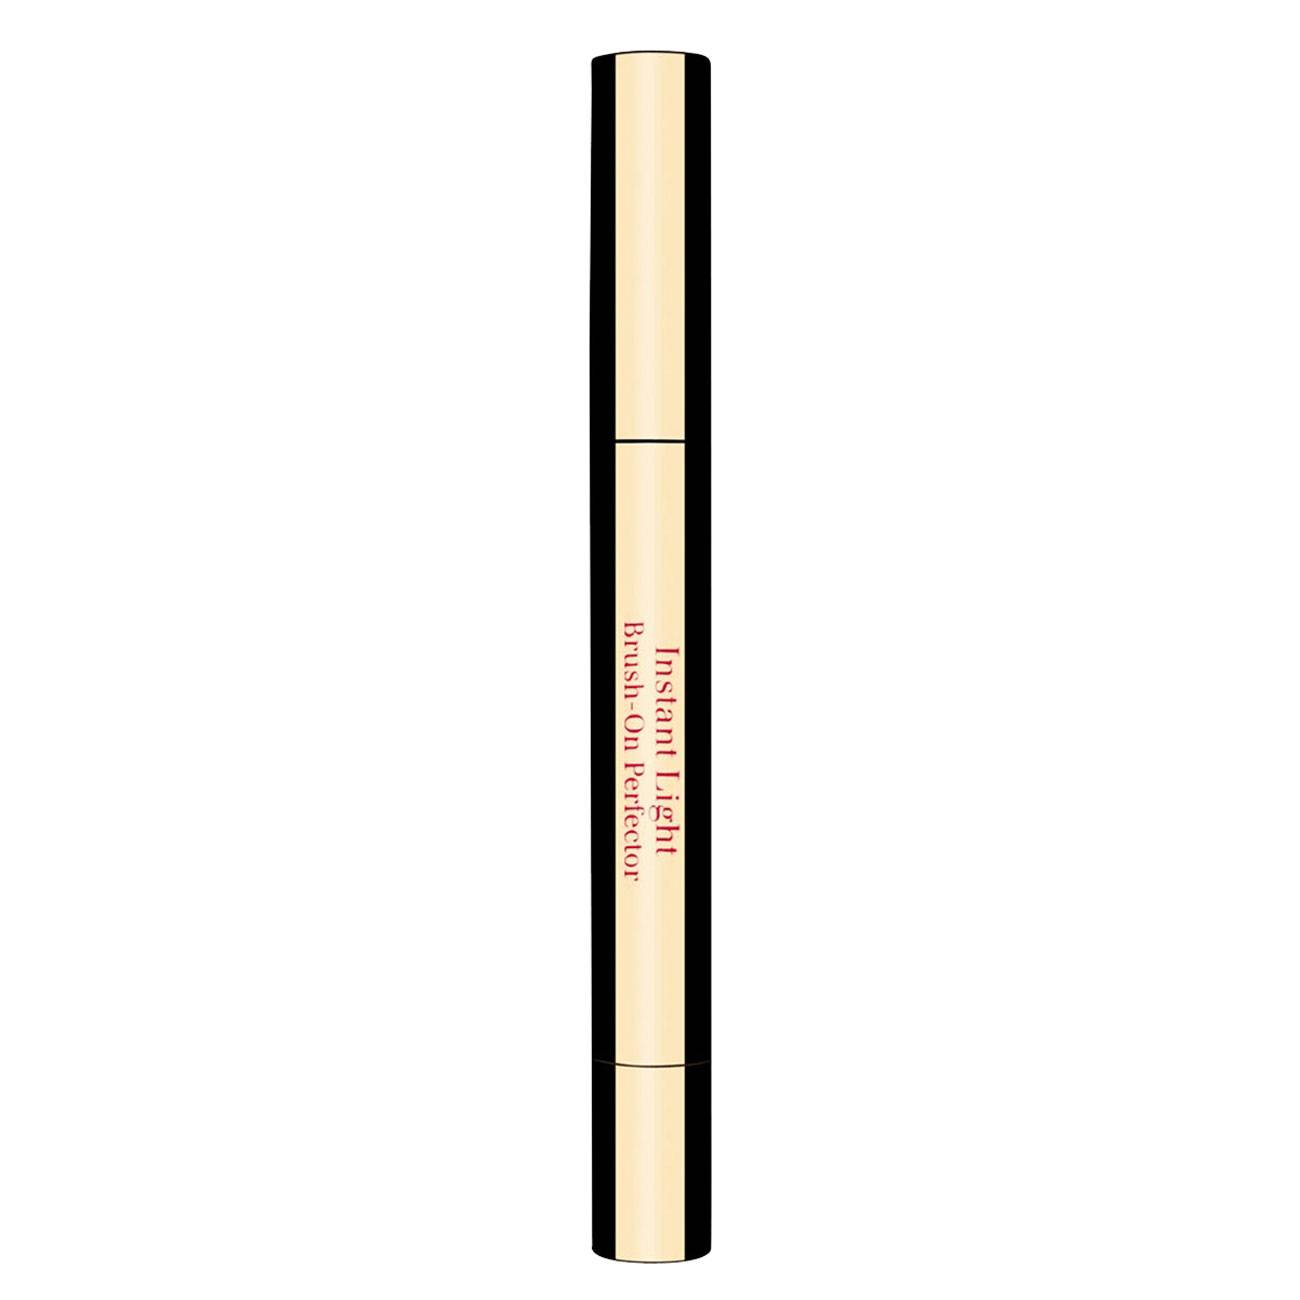 Instant Light Brush-On Perfector 2 Ml Clarins imagine 2021 bestvalue.eu